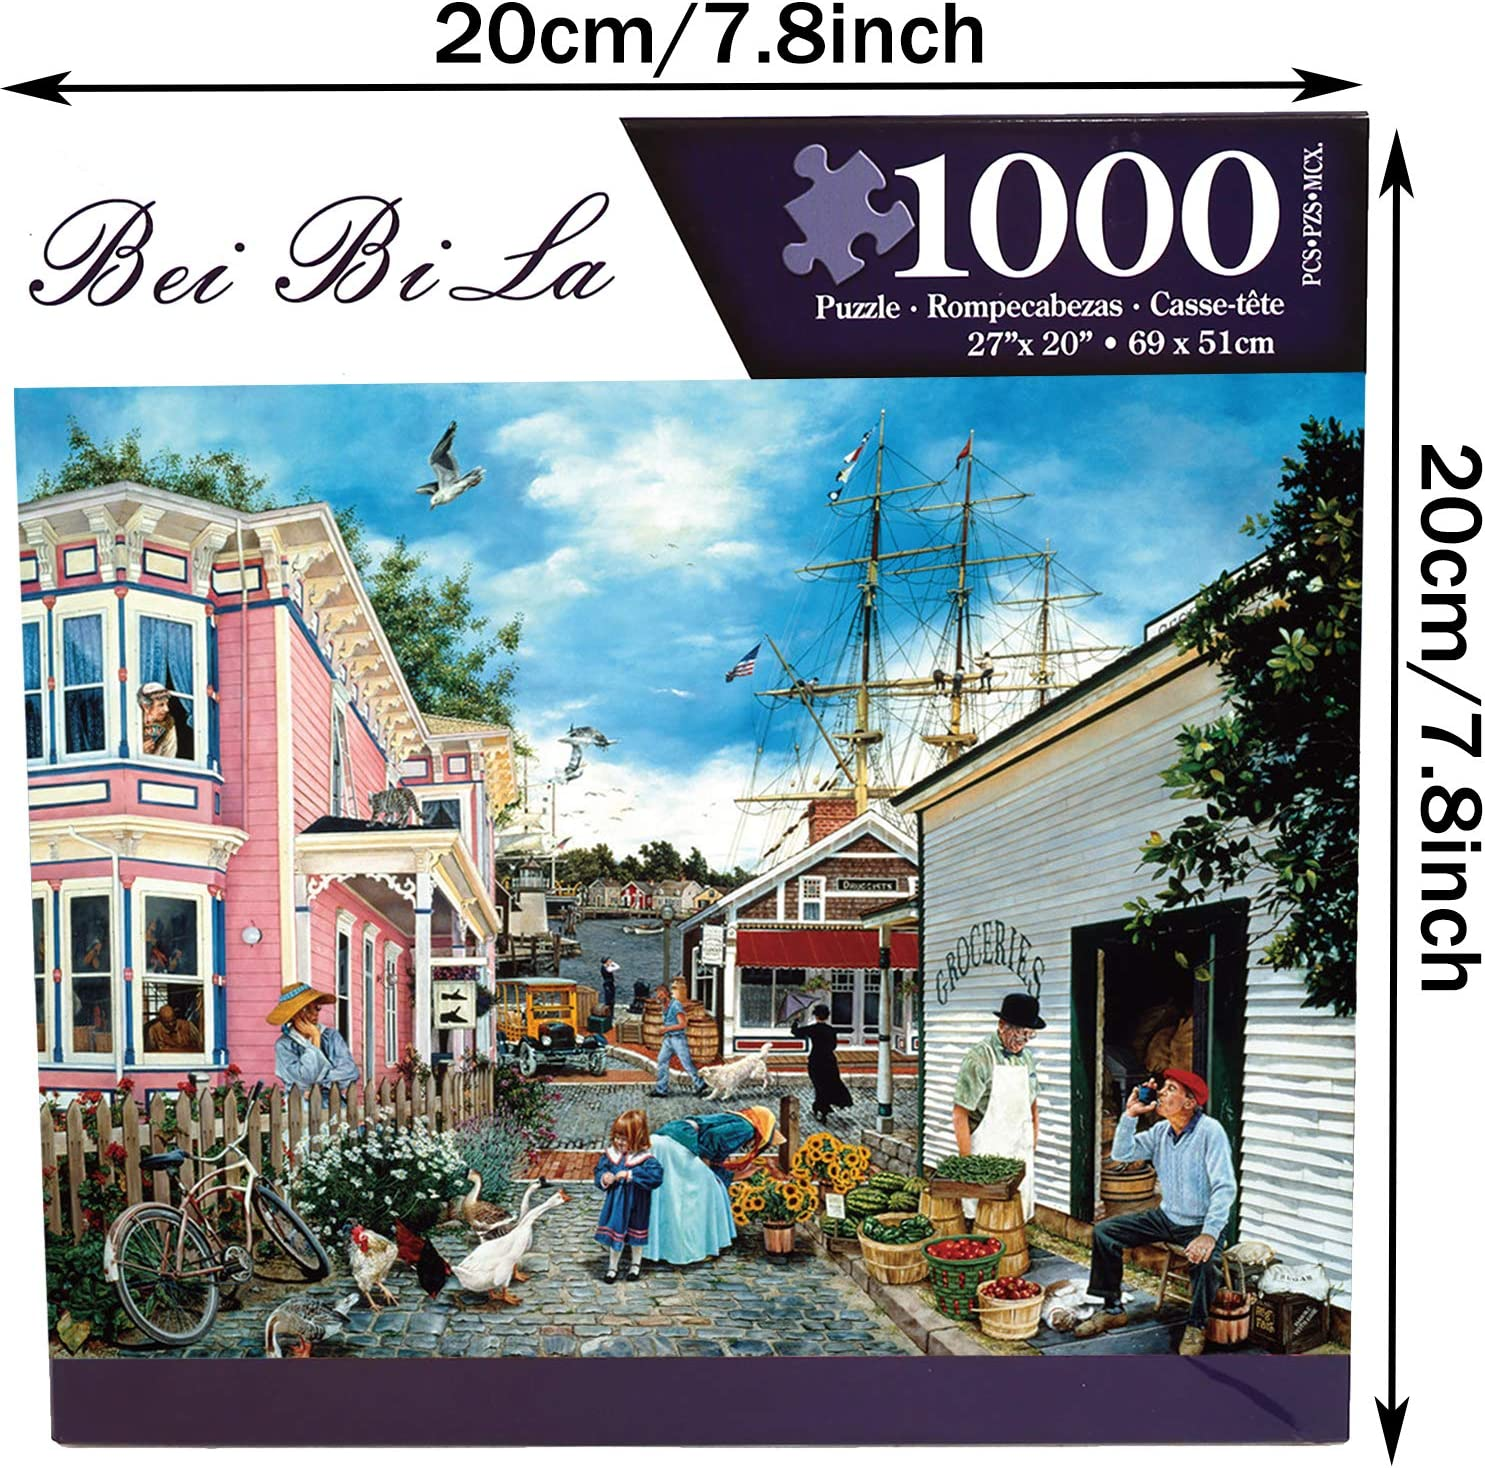 1000 Piece Jigsaw Puzzle,Wharf Town Lager Puzzle for Adults Kids